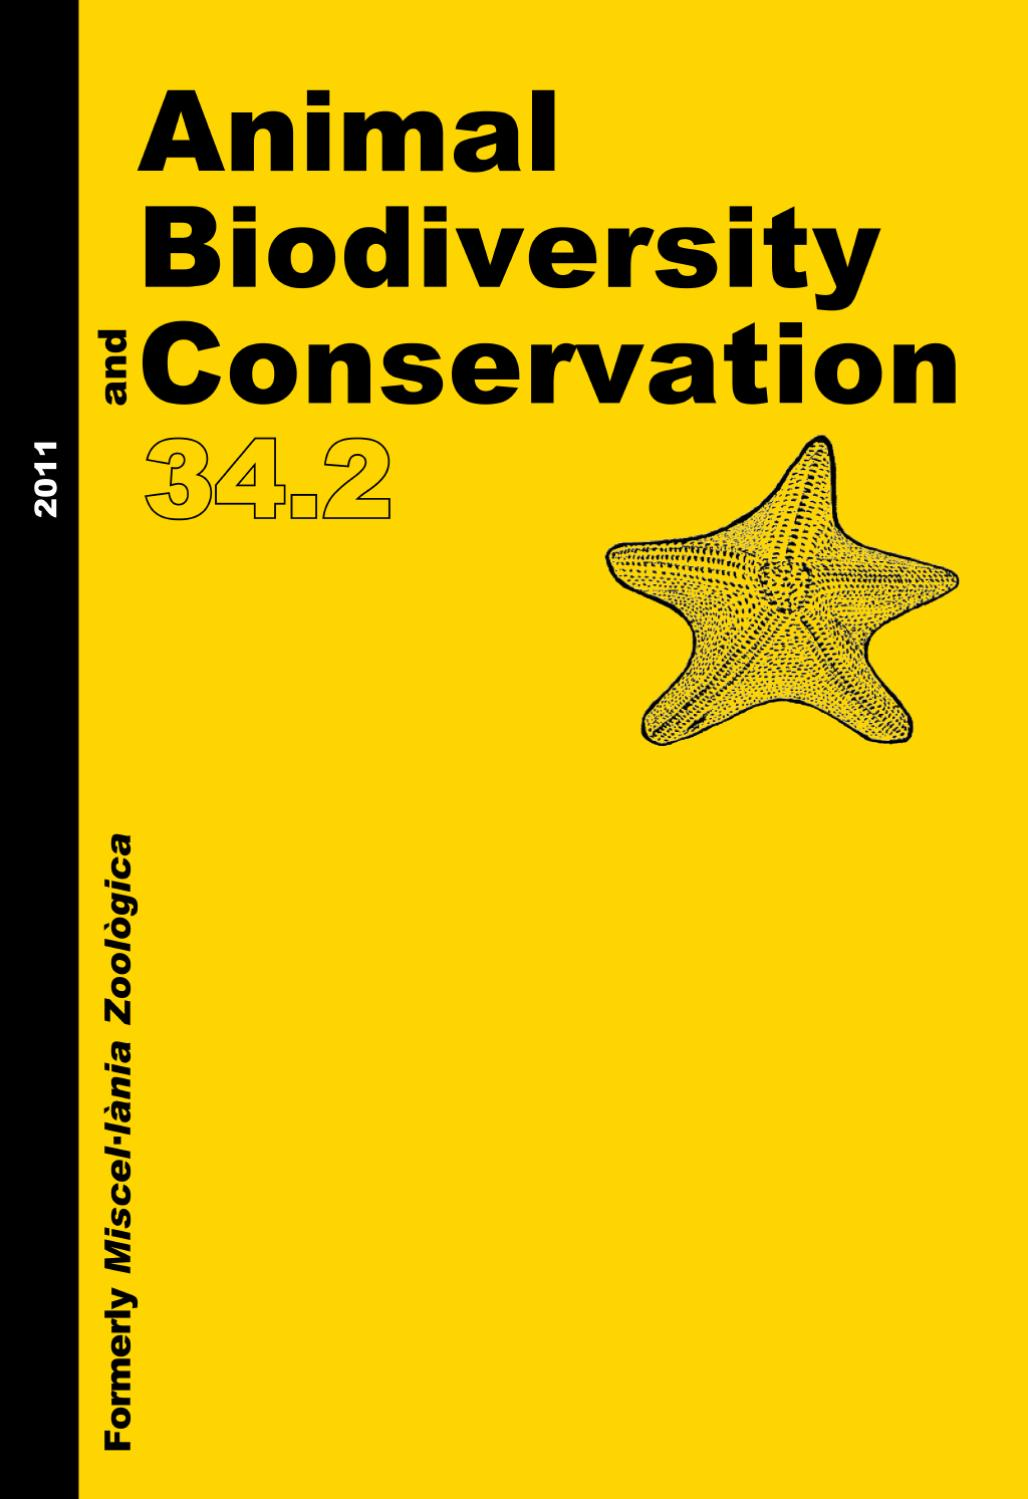 Animal Biodiversity and Conservation issue 34.2 (2011) by Museu ...